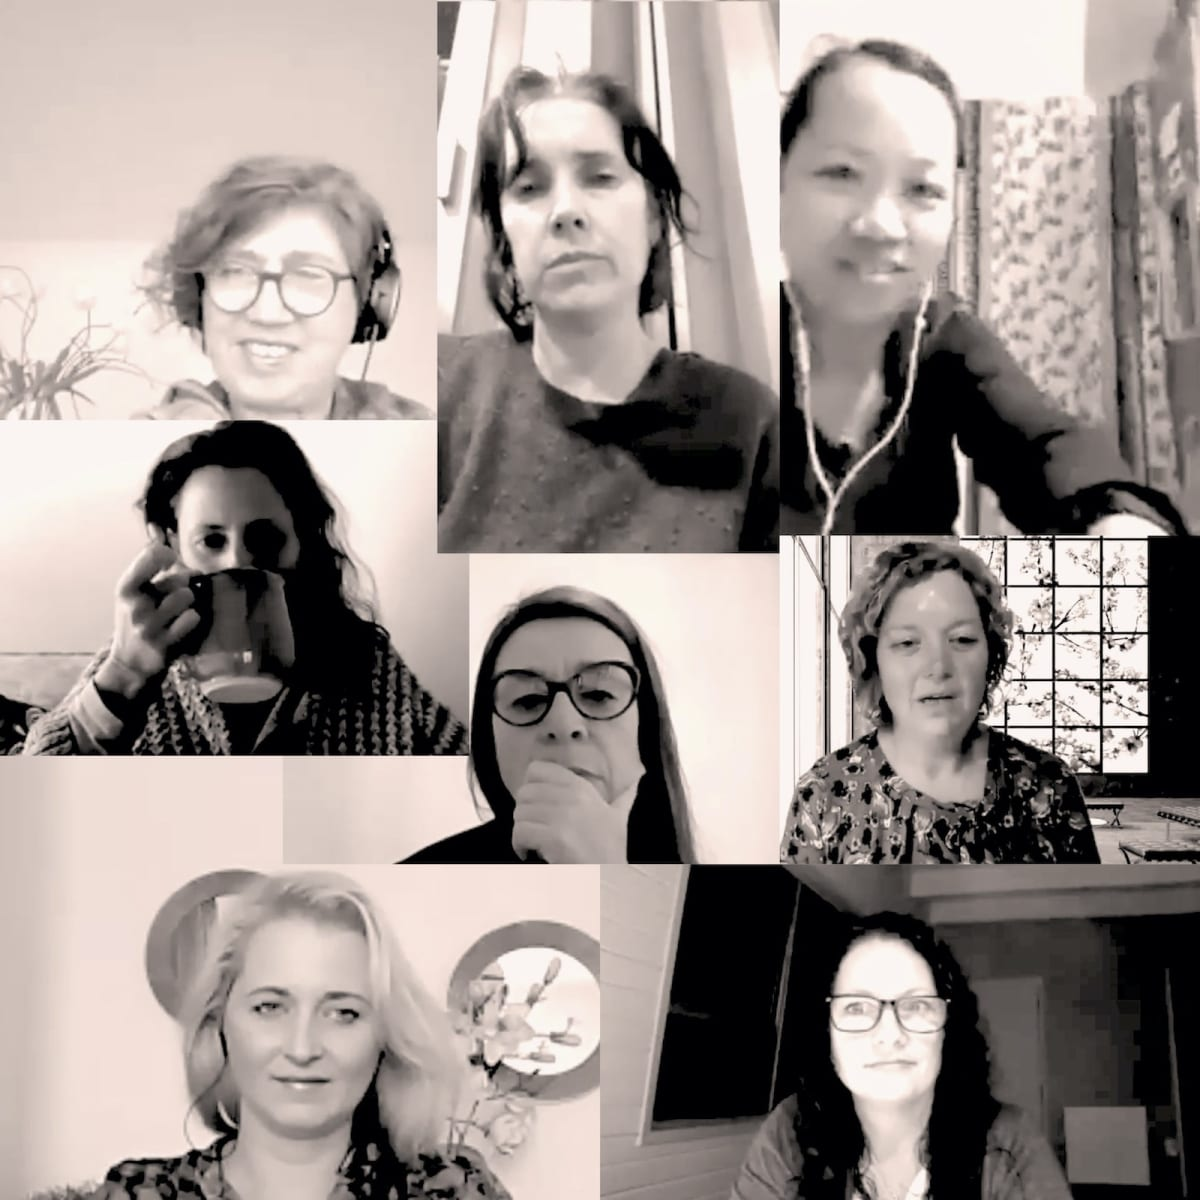 (from top left): Antonella Scarabelli (Lead), Aimee Magne, Jenefer Espero, Ana Sevilla Perez, Geneviève Flaven, Marrije Wesseling (Studio Manager), Rita Herban and Lise Baker